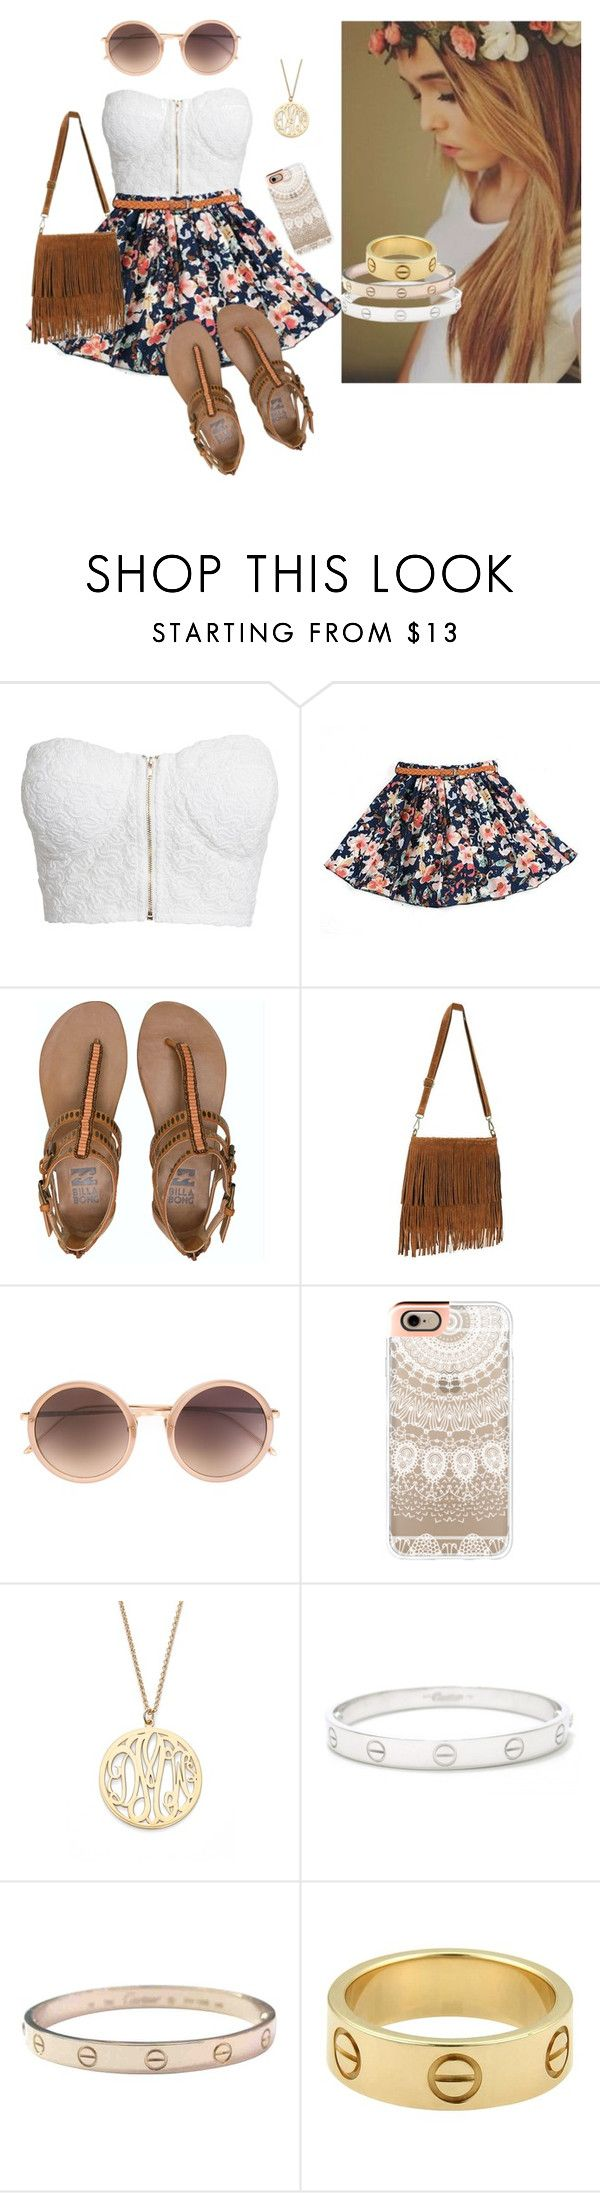 """""""Acacia Brinley Clark was BAE and the first tumblr girl!"""" by mebstyles ❤ liked on Polyvore featuring NLY Trend, Billabong, Brinley Co, Linda Farrow, Casetify, Argento Vivo and Cartier"""